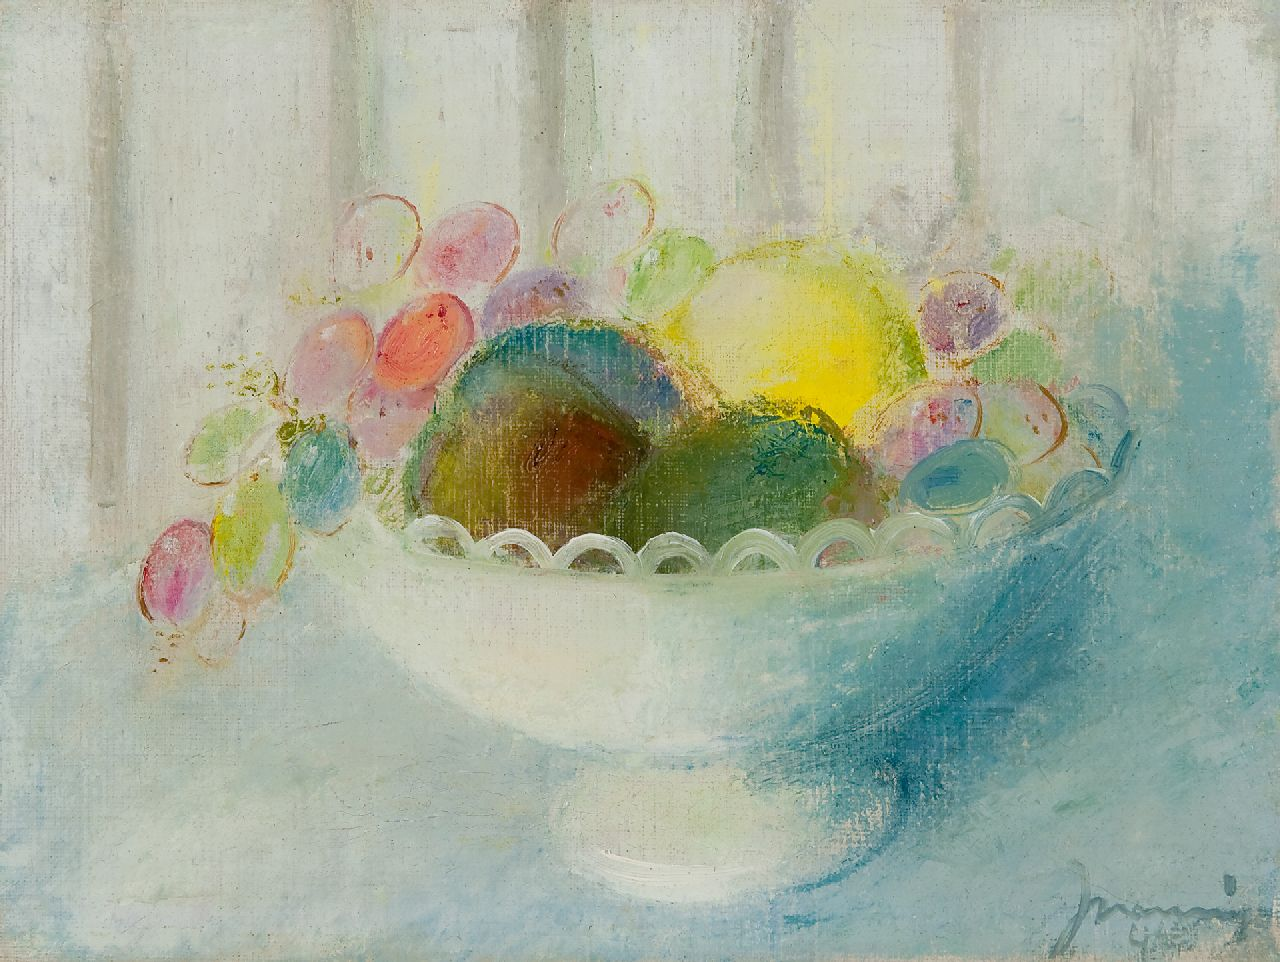 Nanninga J.  | Jacob 'Jaap' Nanninga | Paintings offered for sale | Bowl with fruit, oil on canvas 22.7 x 30.0 cm, signed l.r. and dated '46